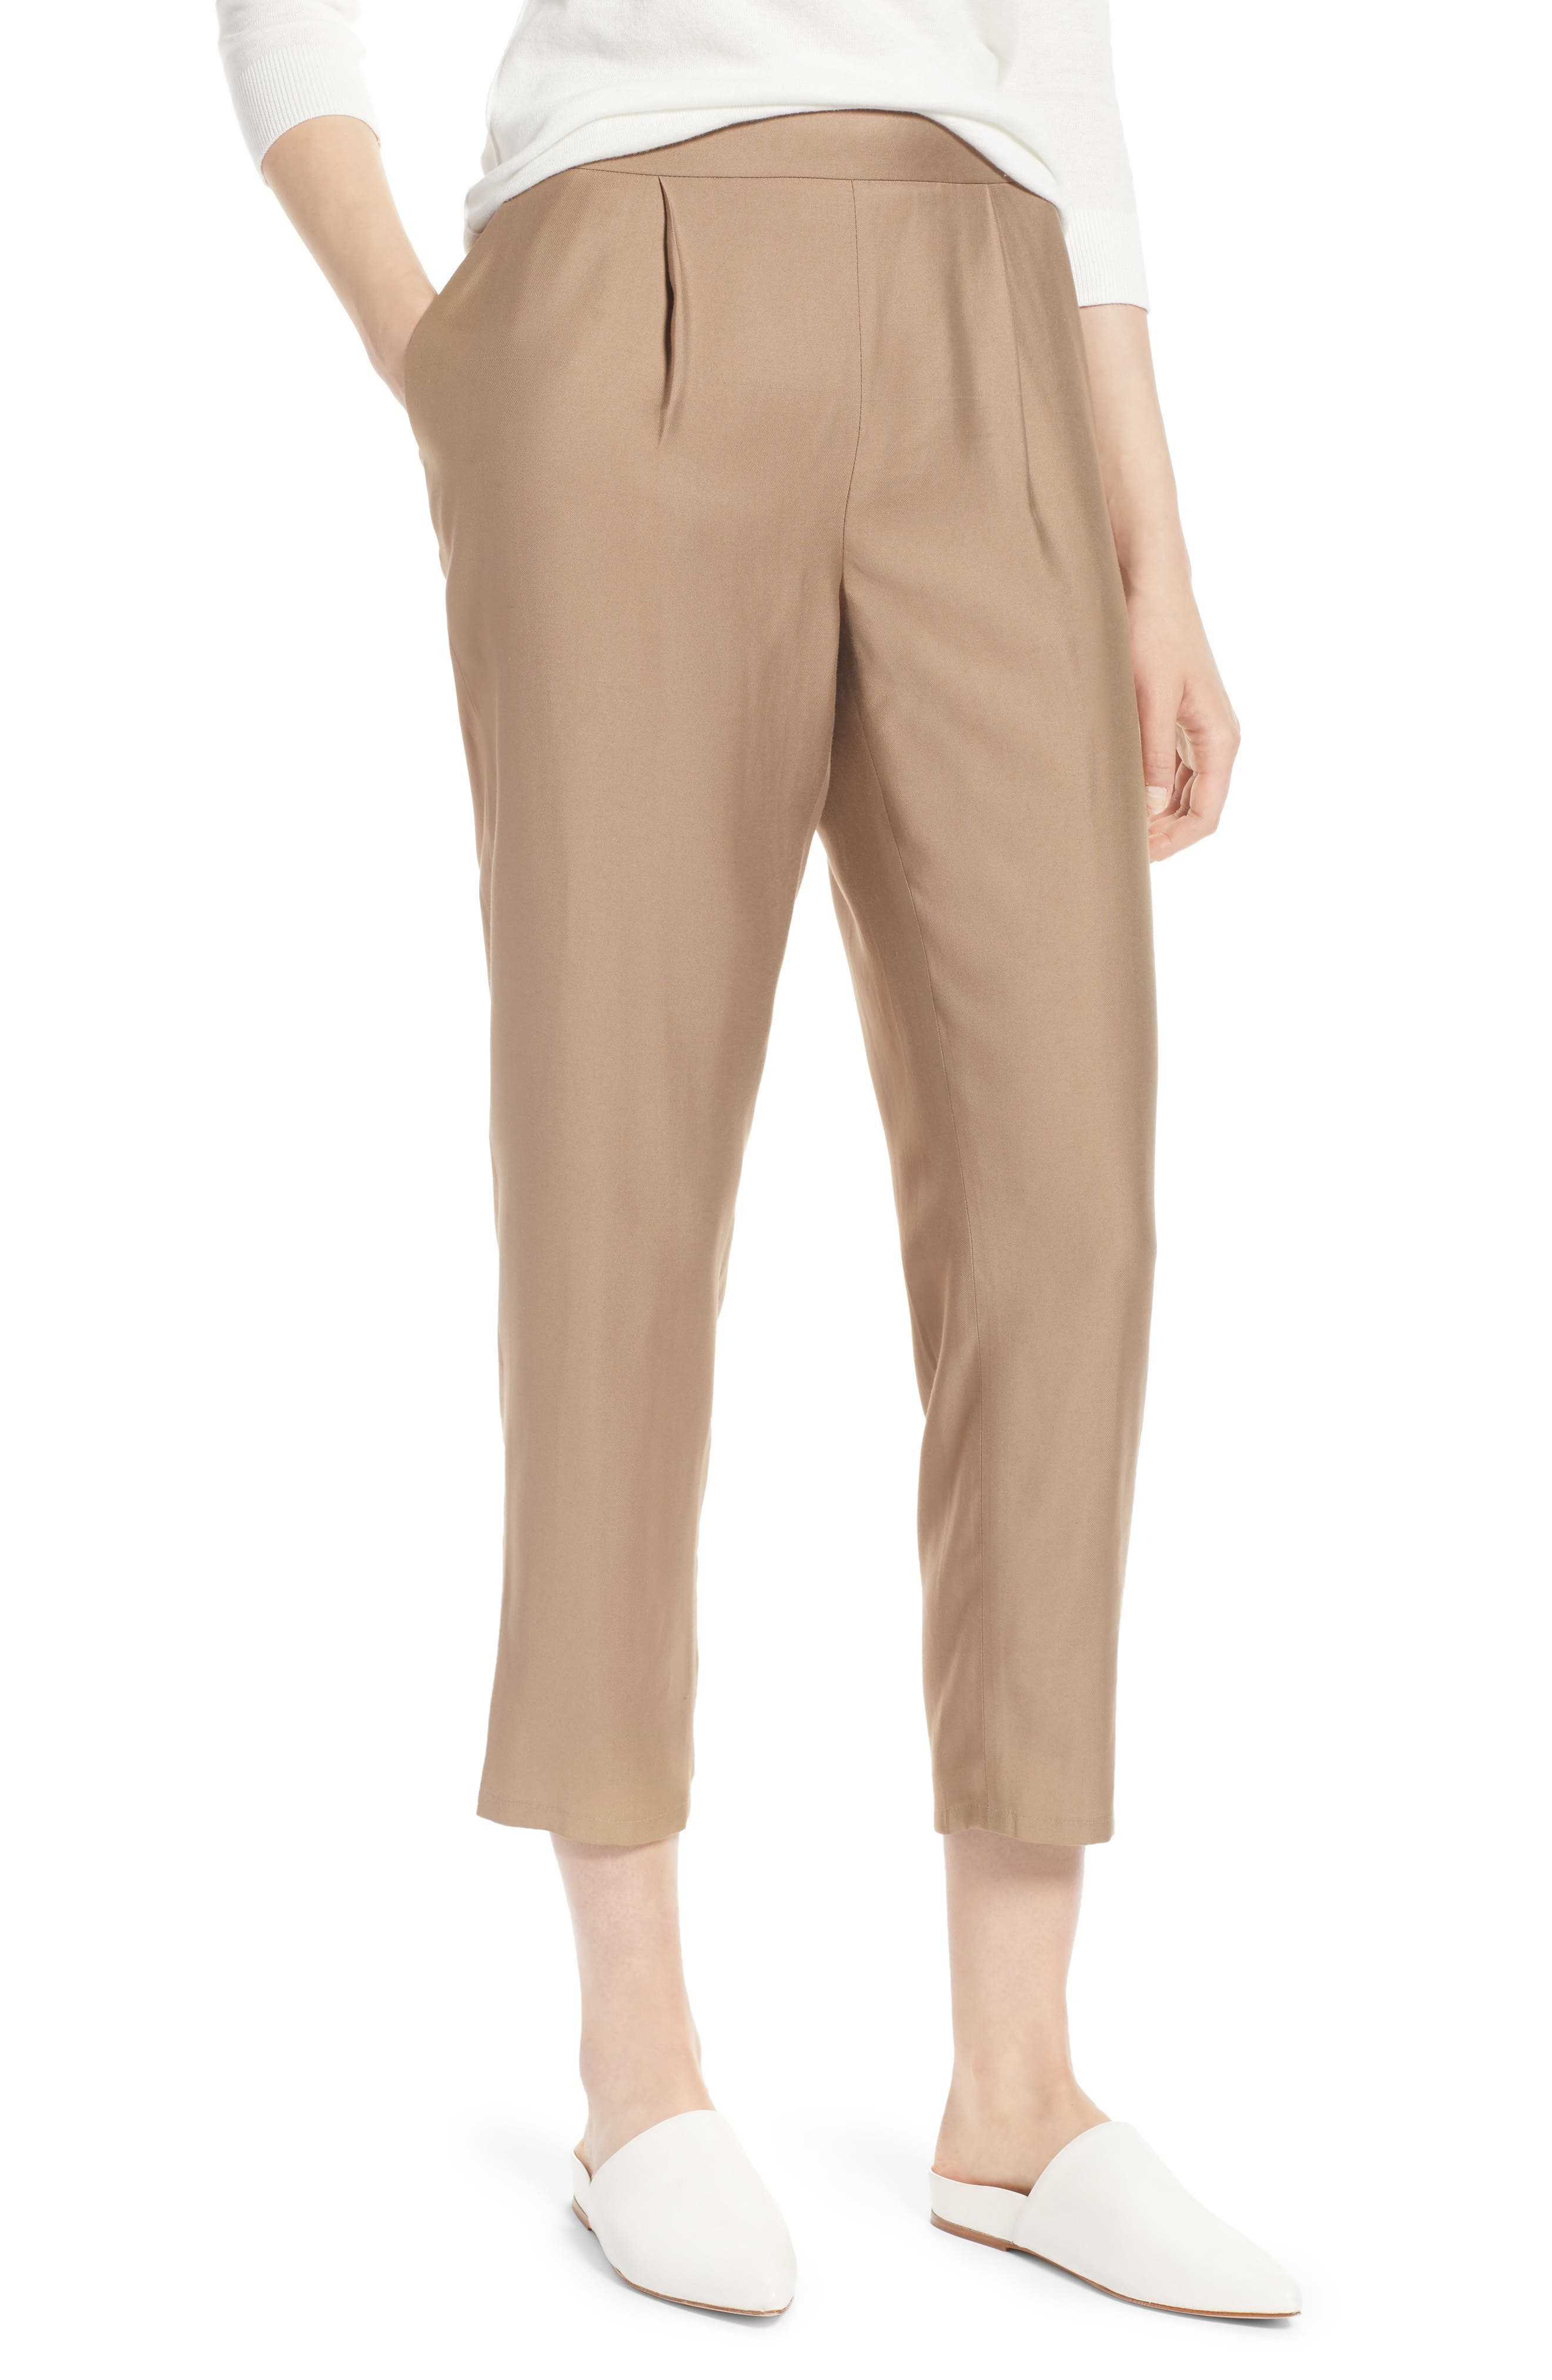 Pull-On Ankle Pants,                         Main,                         color, Tan Greige